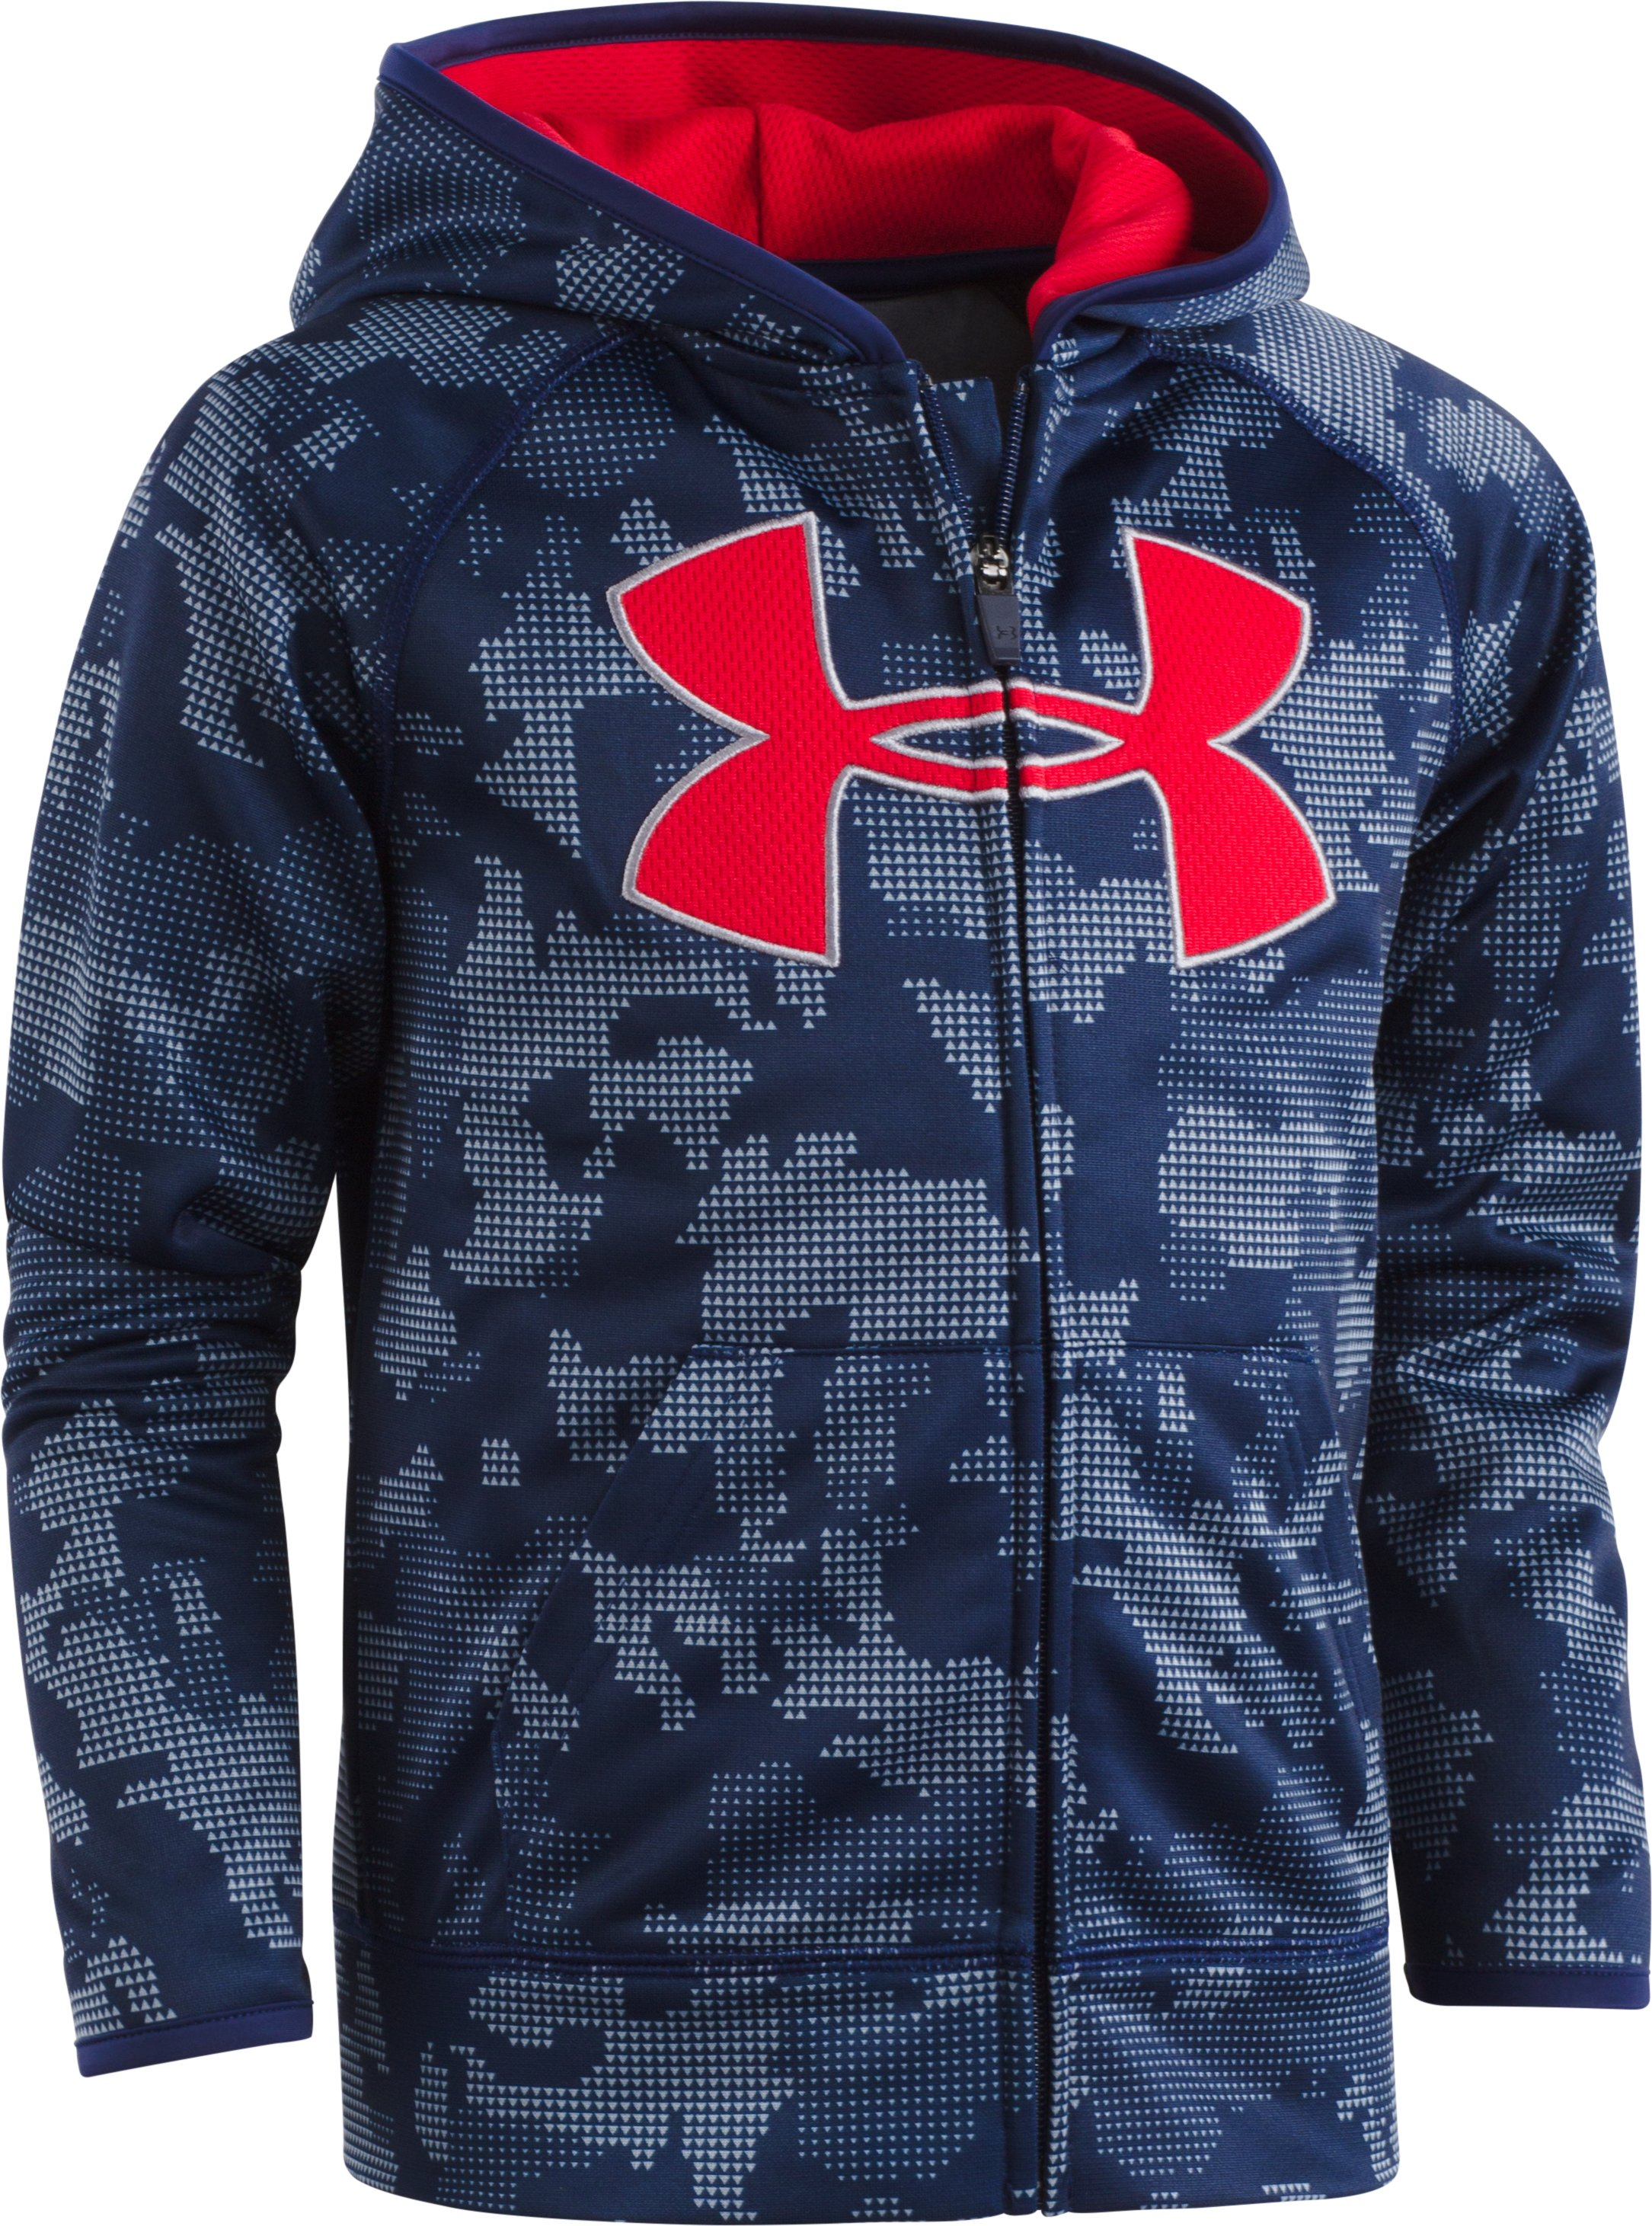 Boys' Pre-School UA Utility Camo Big Logo Hoodie, Midnight Navy, zoomed